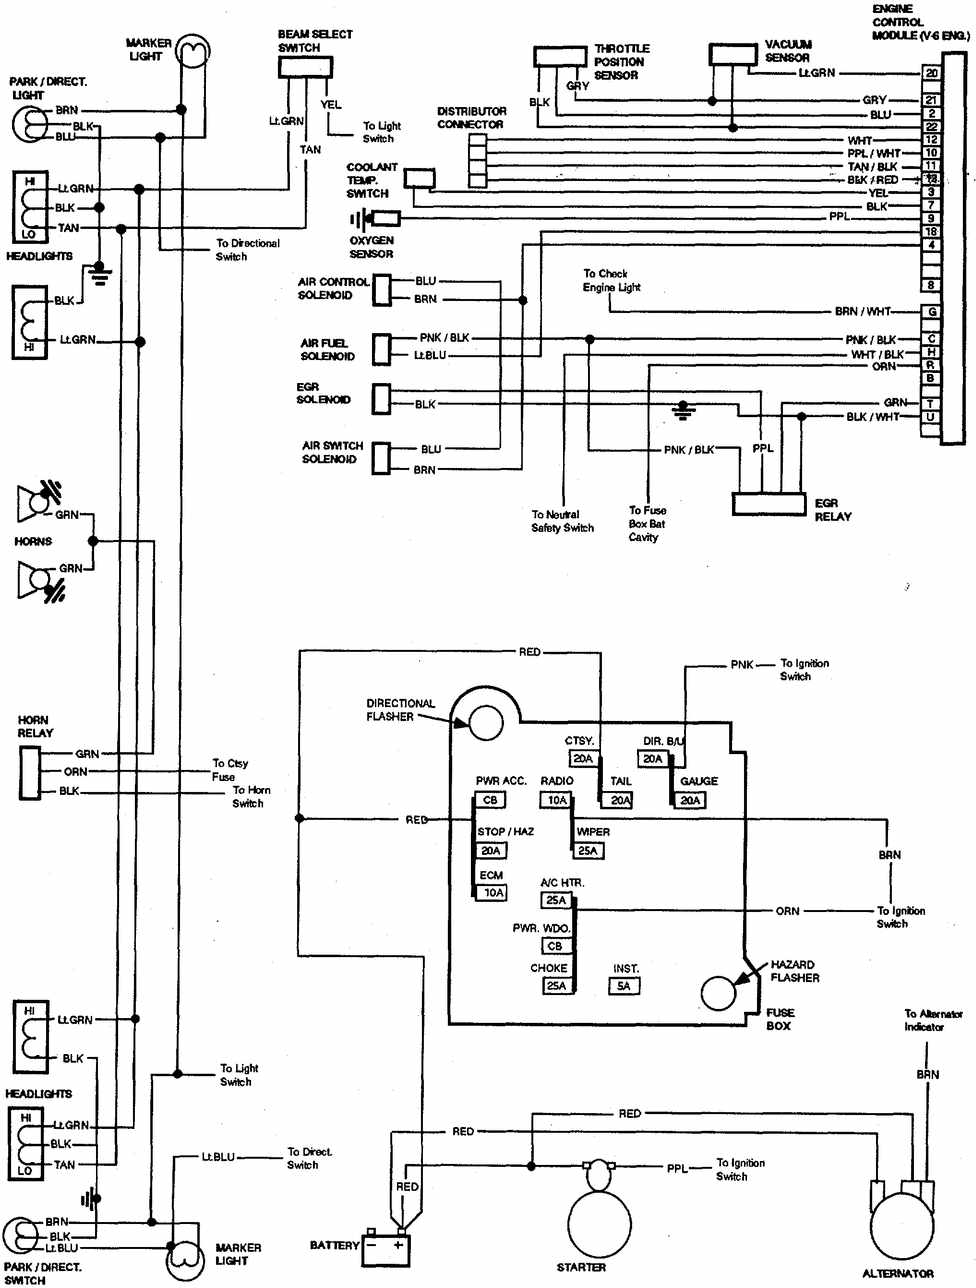 1999 dodge ram 1500 fuel pump wiring diagram